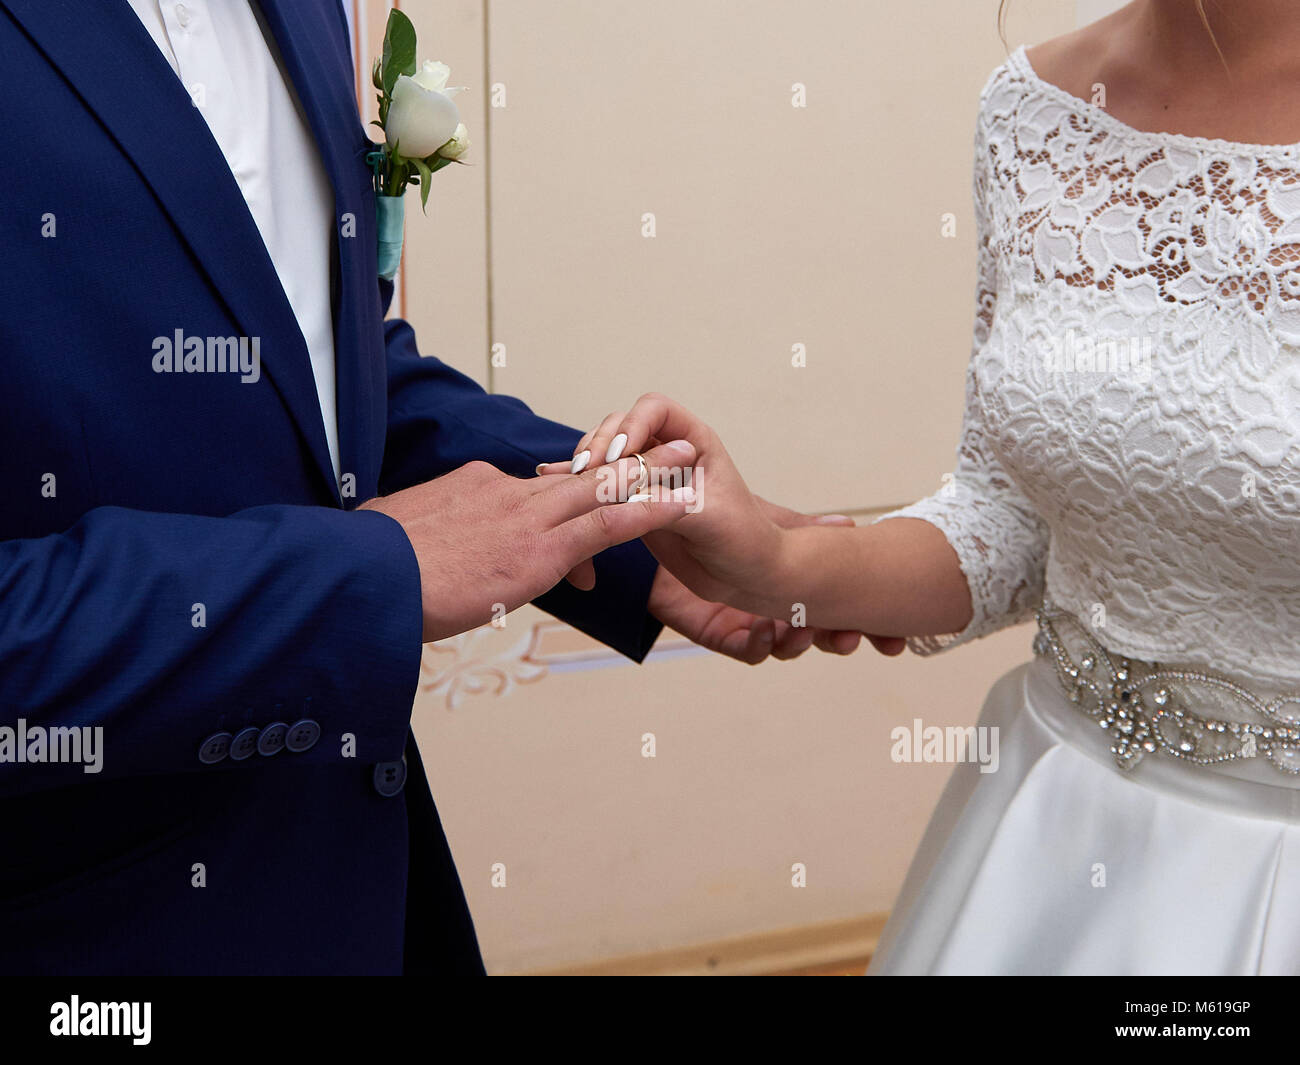 Bride and groom holding hands close up - Stock Image